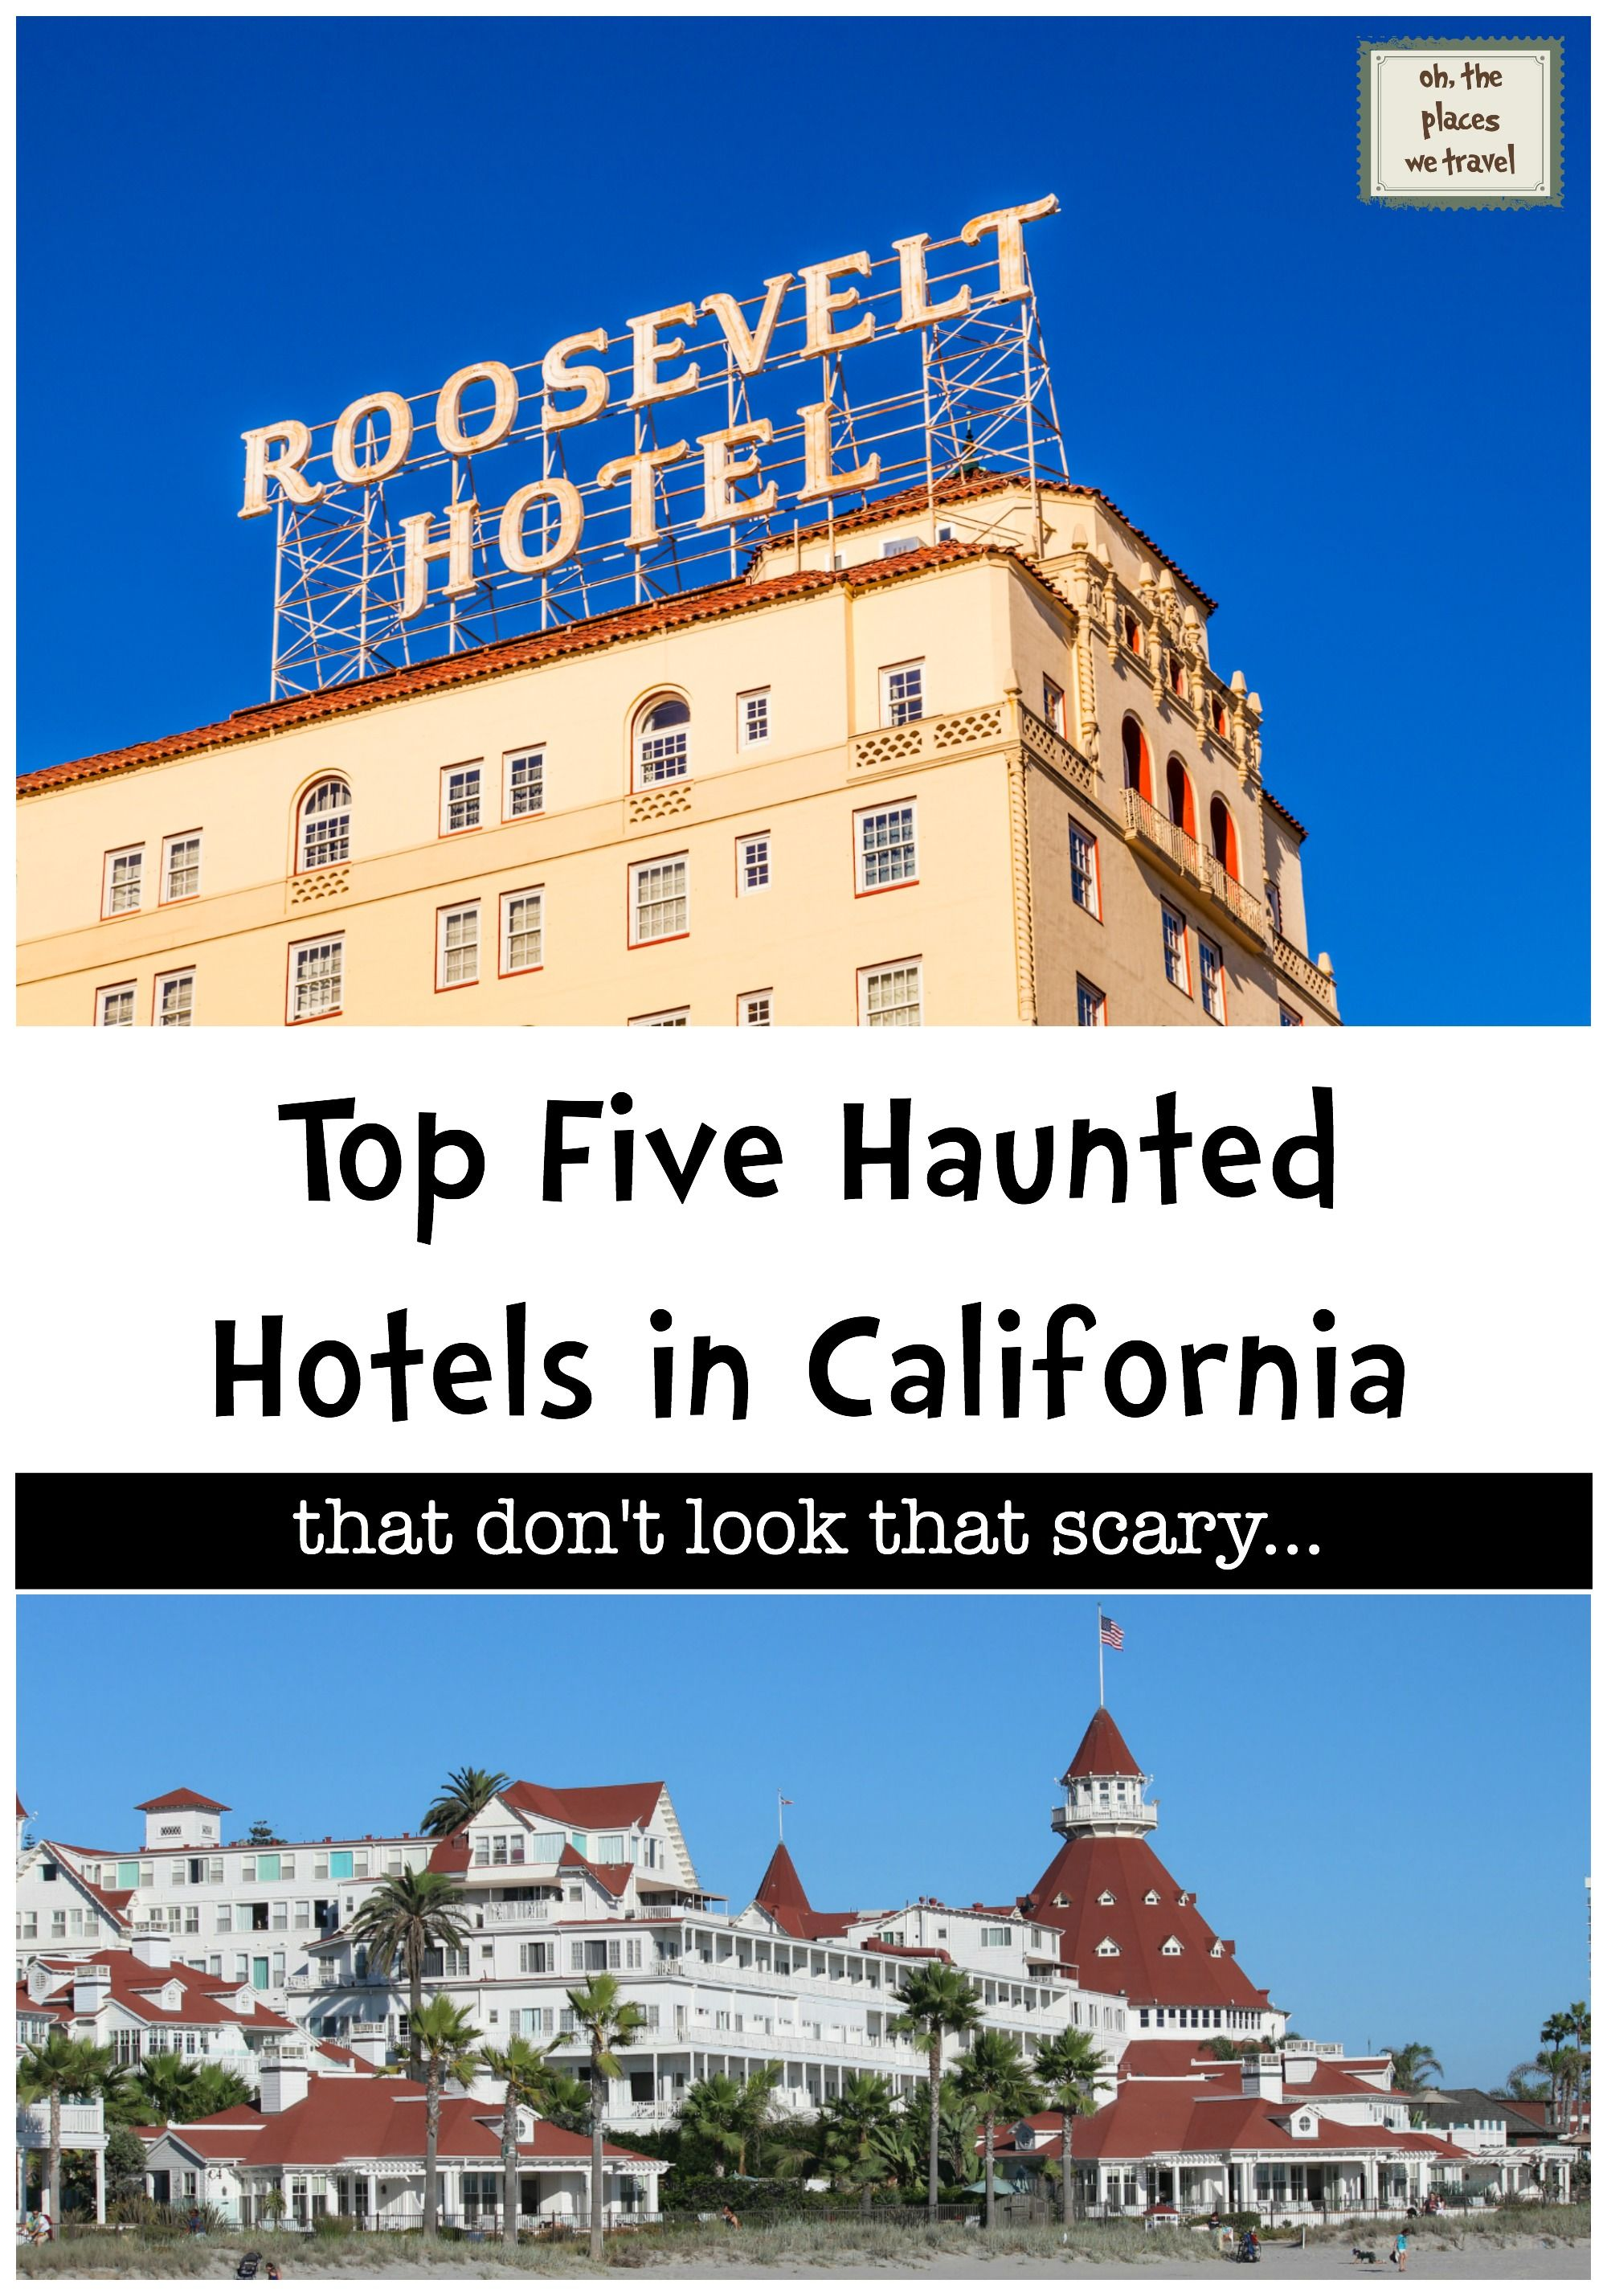 5 haunted hotels to visit in california. although they don't look